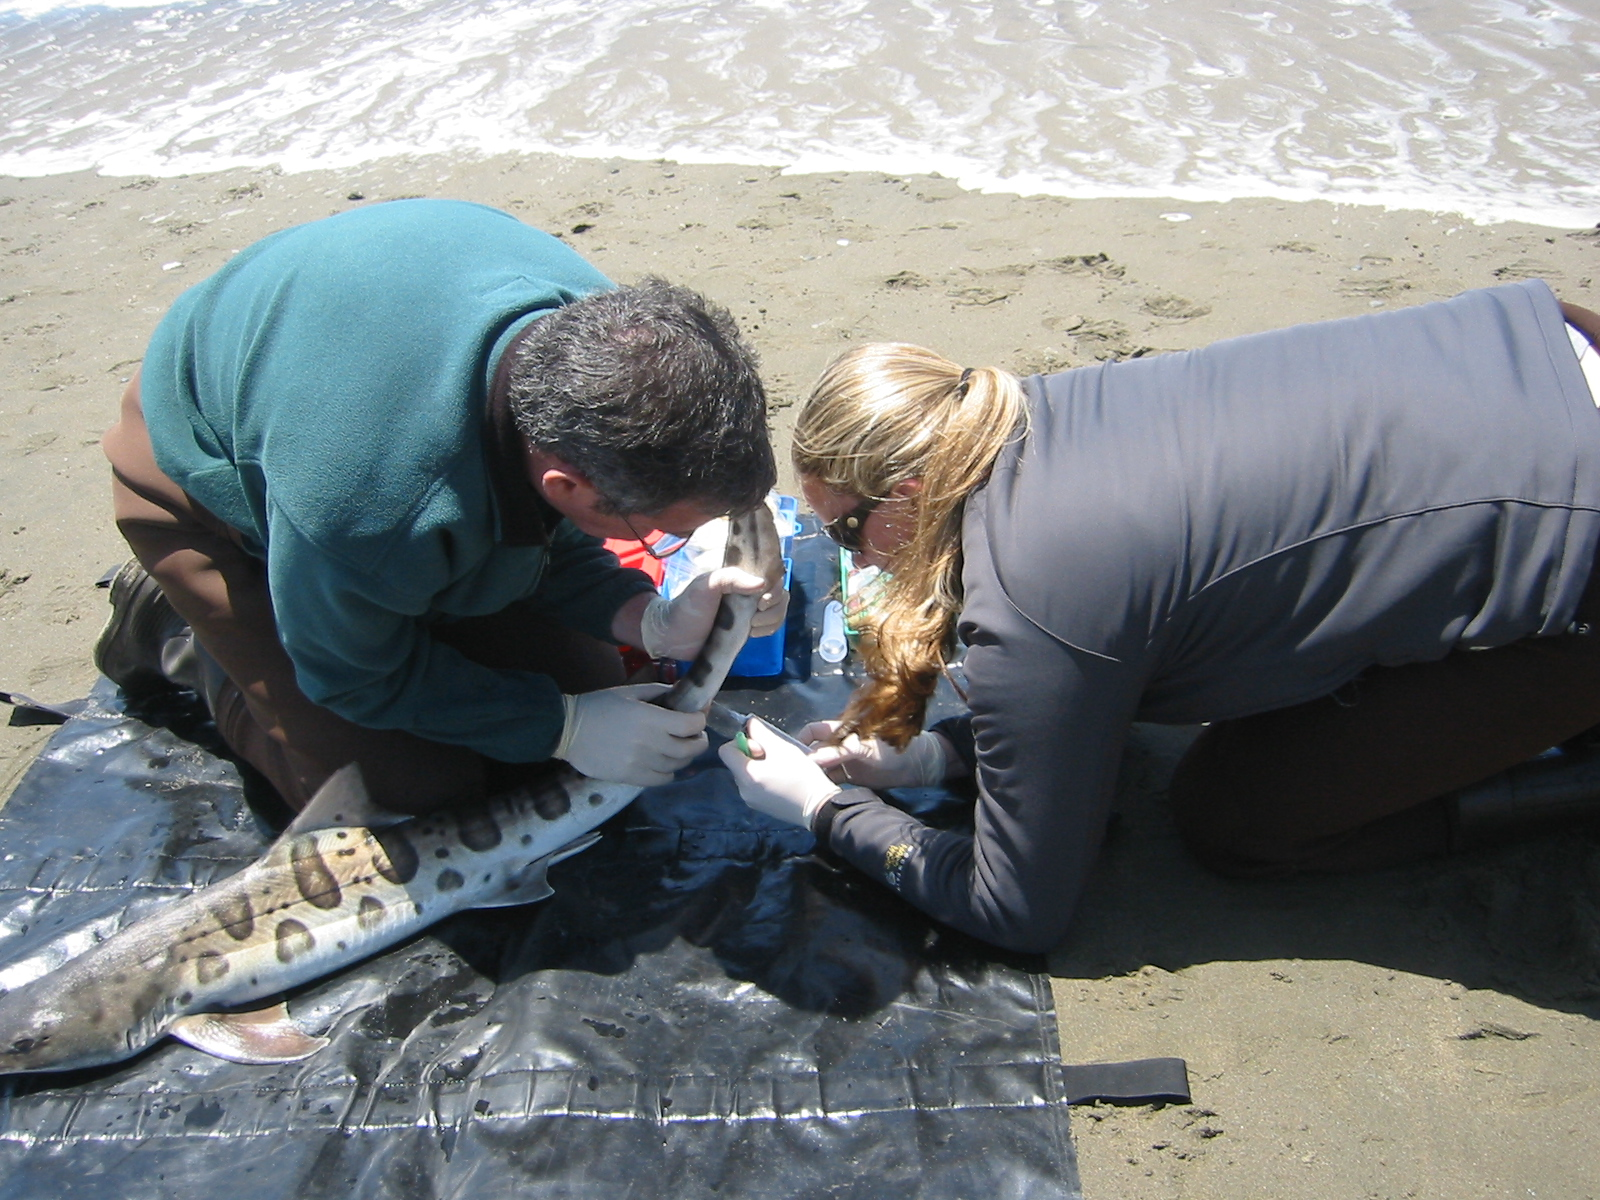 the marine mystery The mystery of the marine monster on south carolina beach a bizarre creature that washed ashore last week in folly beach, sc, sparked speculation in the area and on the internet that a dead sea monster might have been discovered.